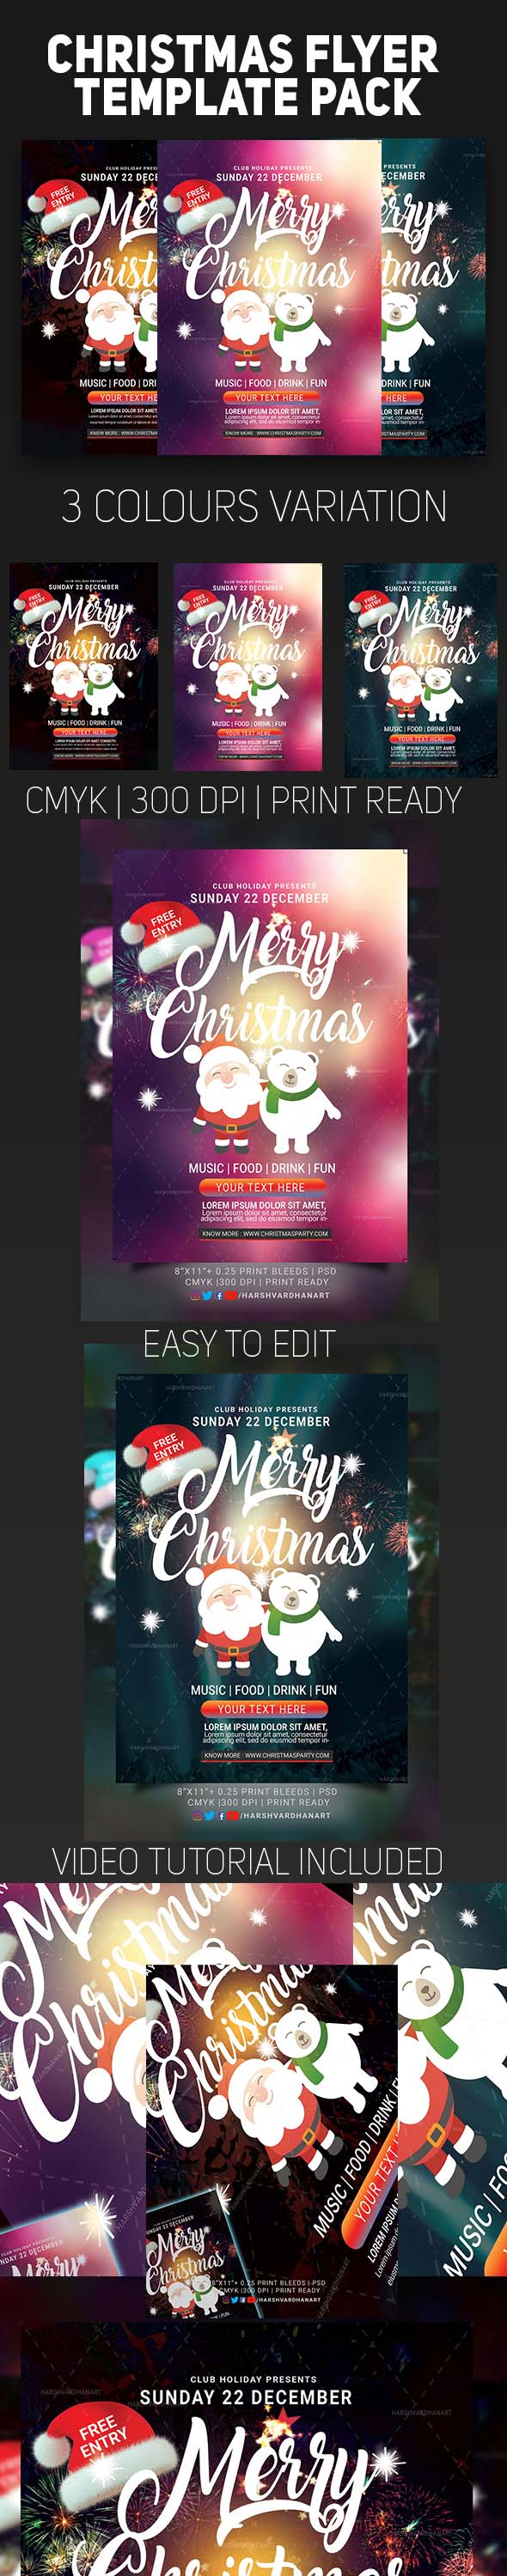 EDITABLE Christmas Flyer Template